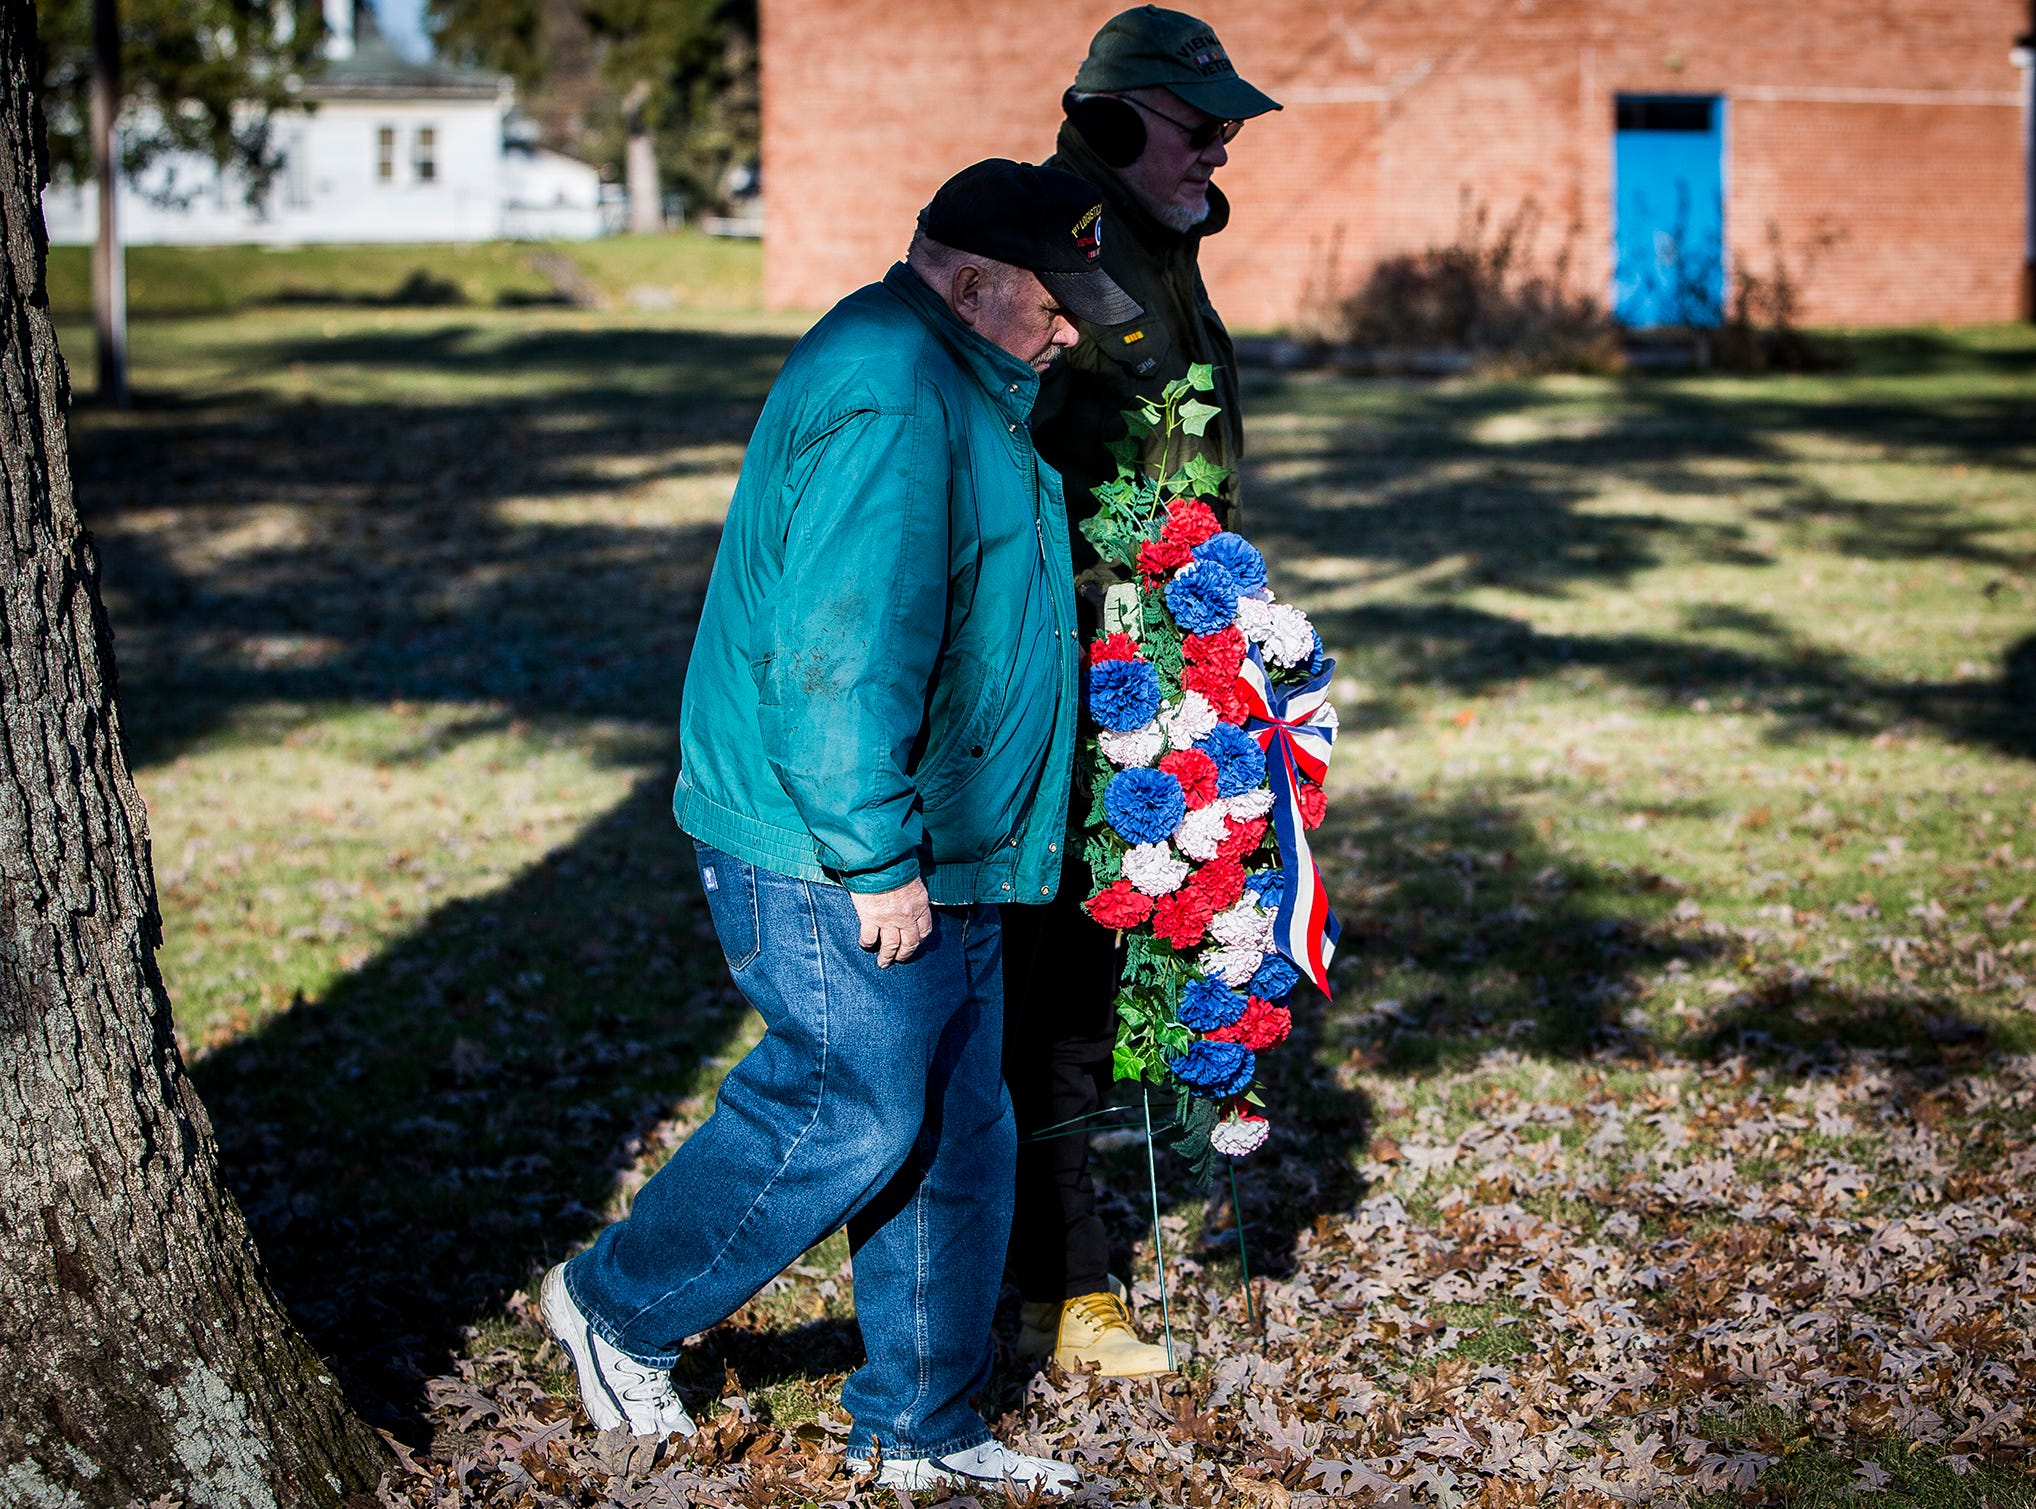 Vietnam veteran Gary Turner spoke during the Delaware County Veterans Day Service at Heekin Park Sunday morning. The Delaware County Honor Guard performed a rifle salute during the ceremony and Chaplin Hank Hansen led attendees in a prayer for veterans.